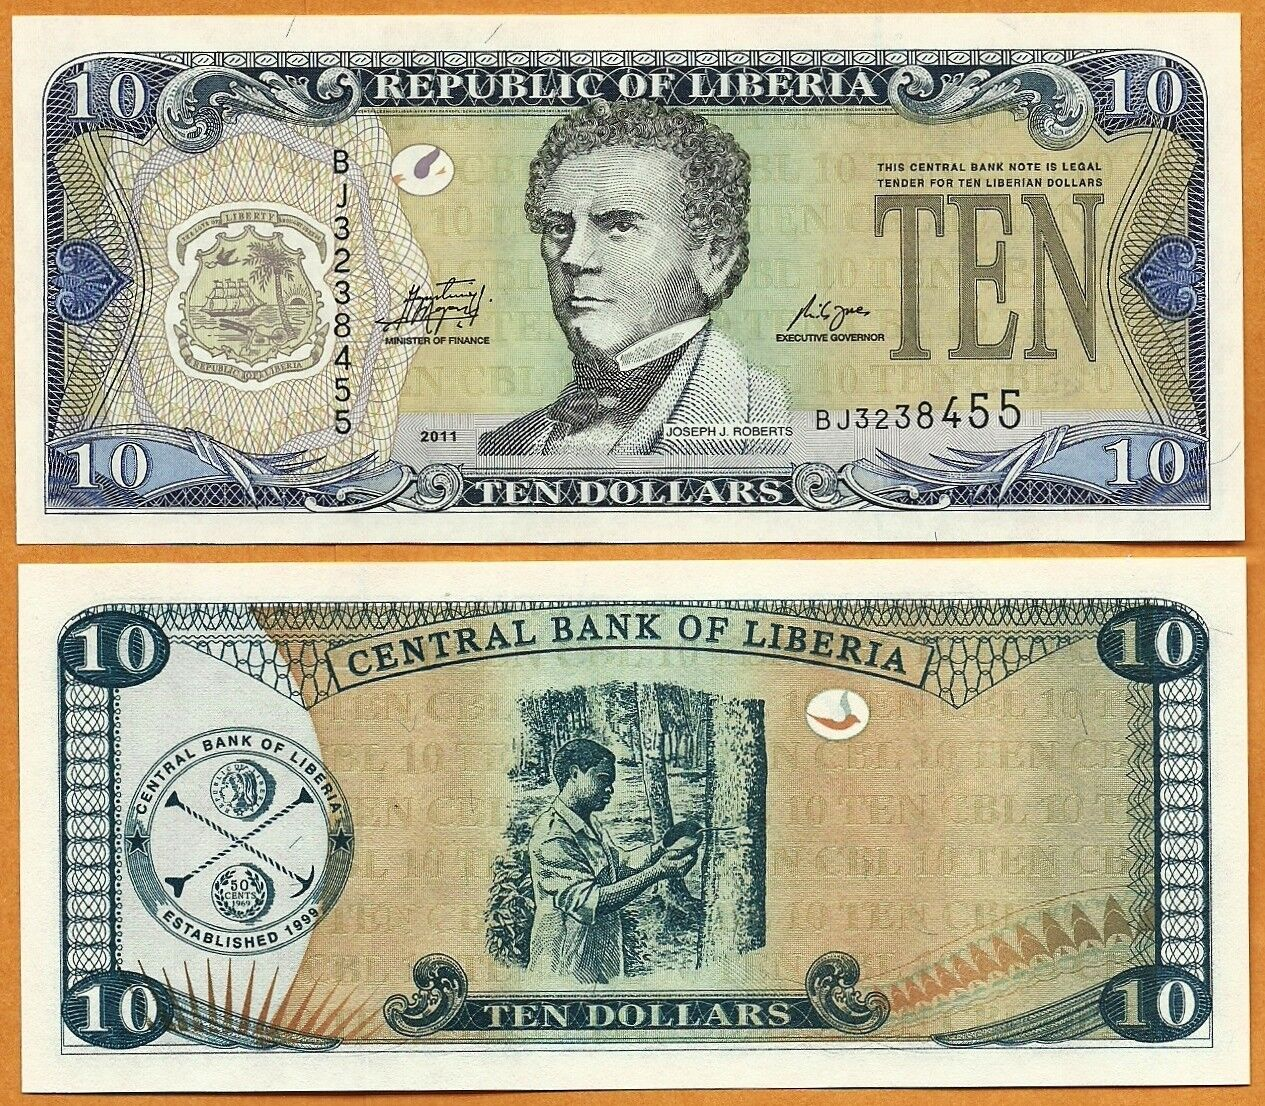 LIBERIA 2017 20 DOLLARS UNC MINT  BANKNOTE PAPER MONEY CURRENCY BILL NOTE